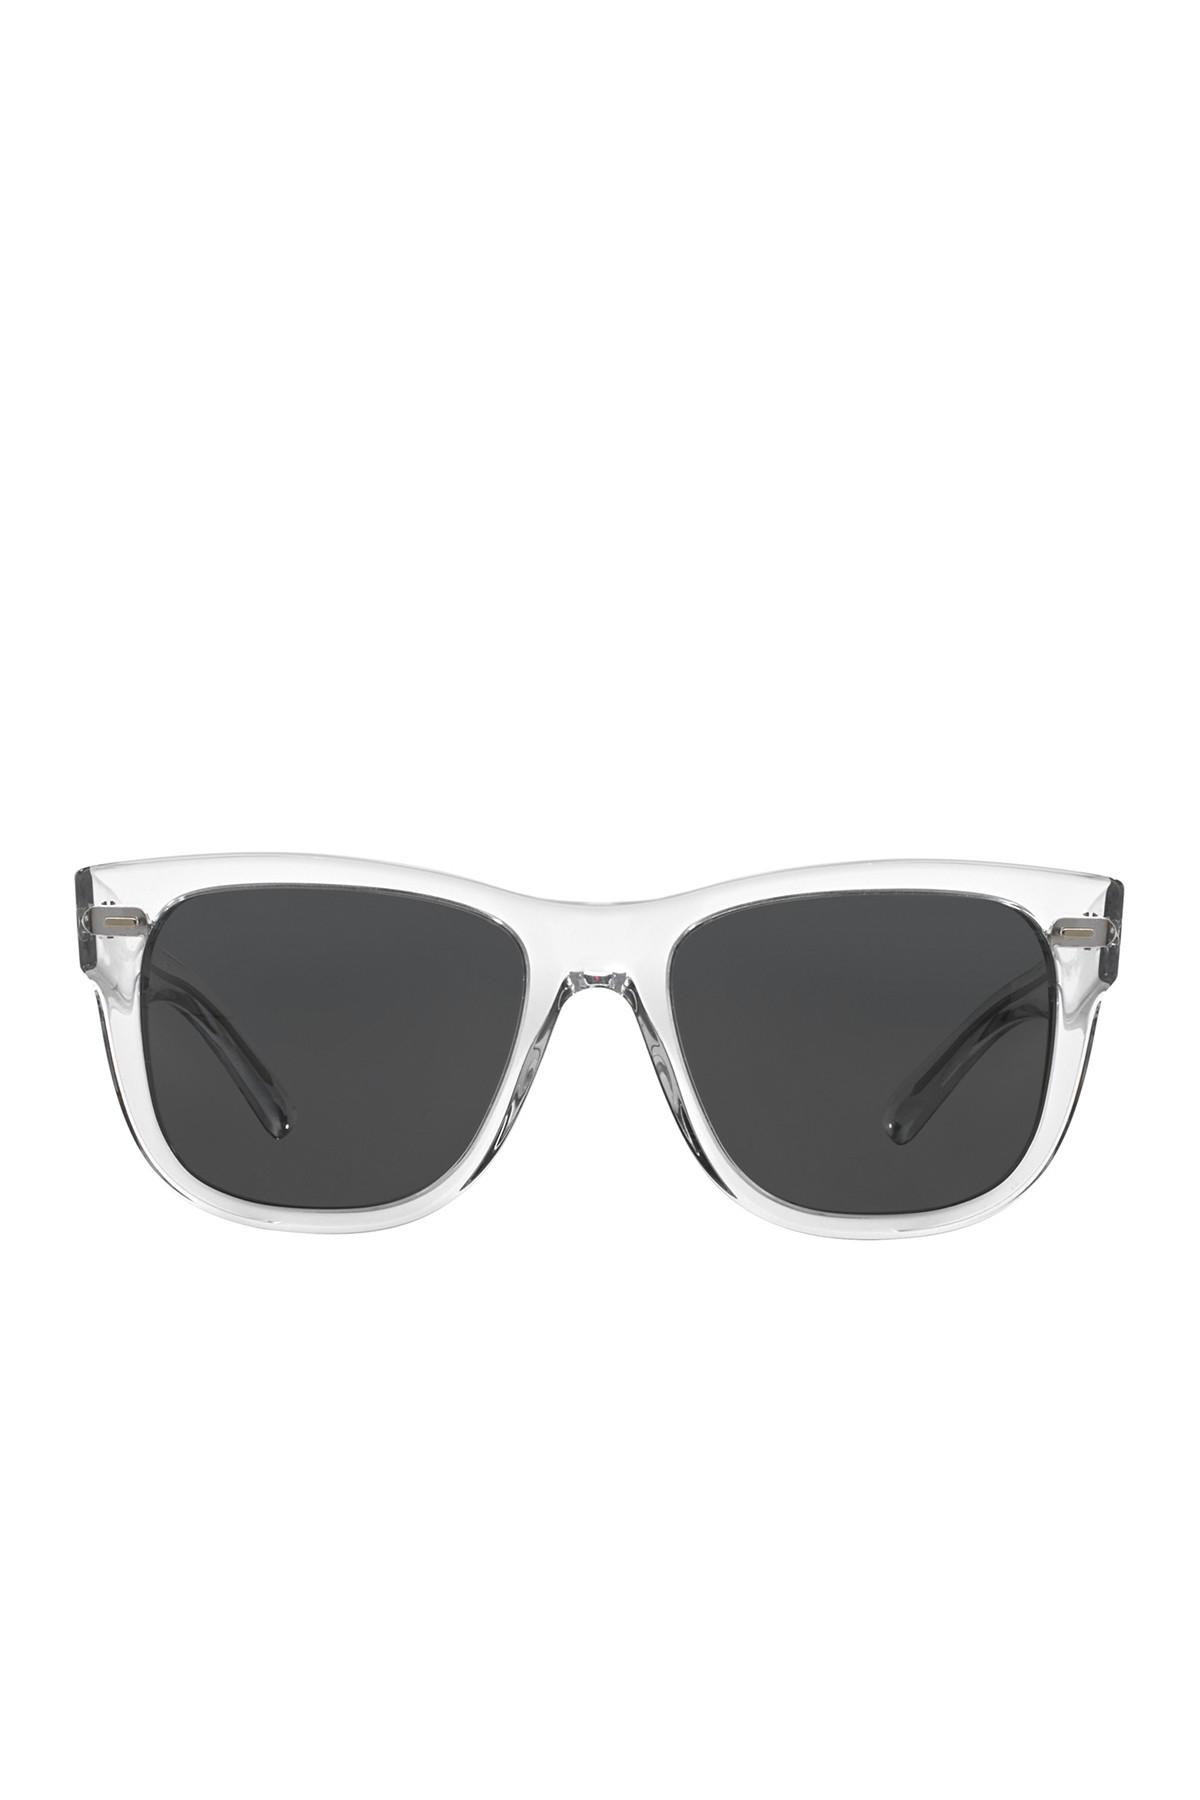 1b4559bdef Dolce   Gabbana - Gray 55mm Square Sunglasses - Lyst. View fullscreen